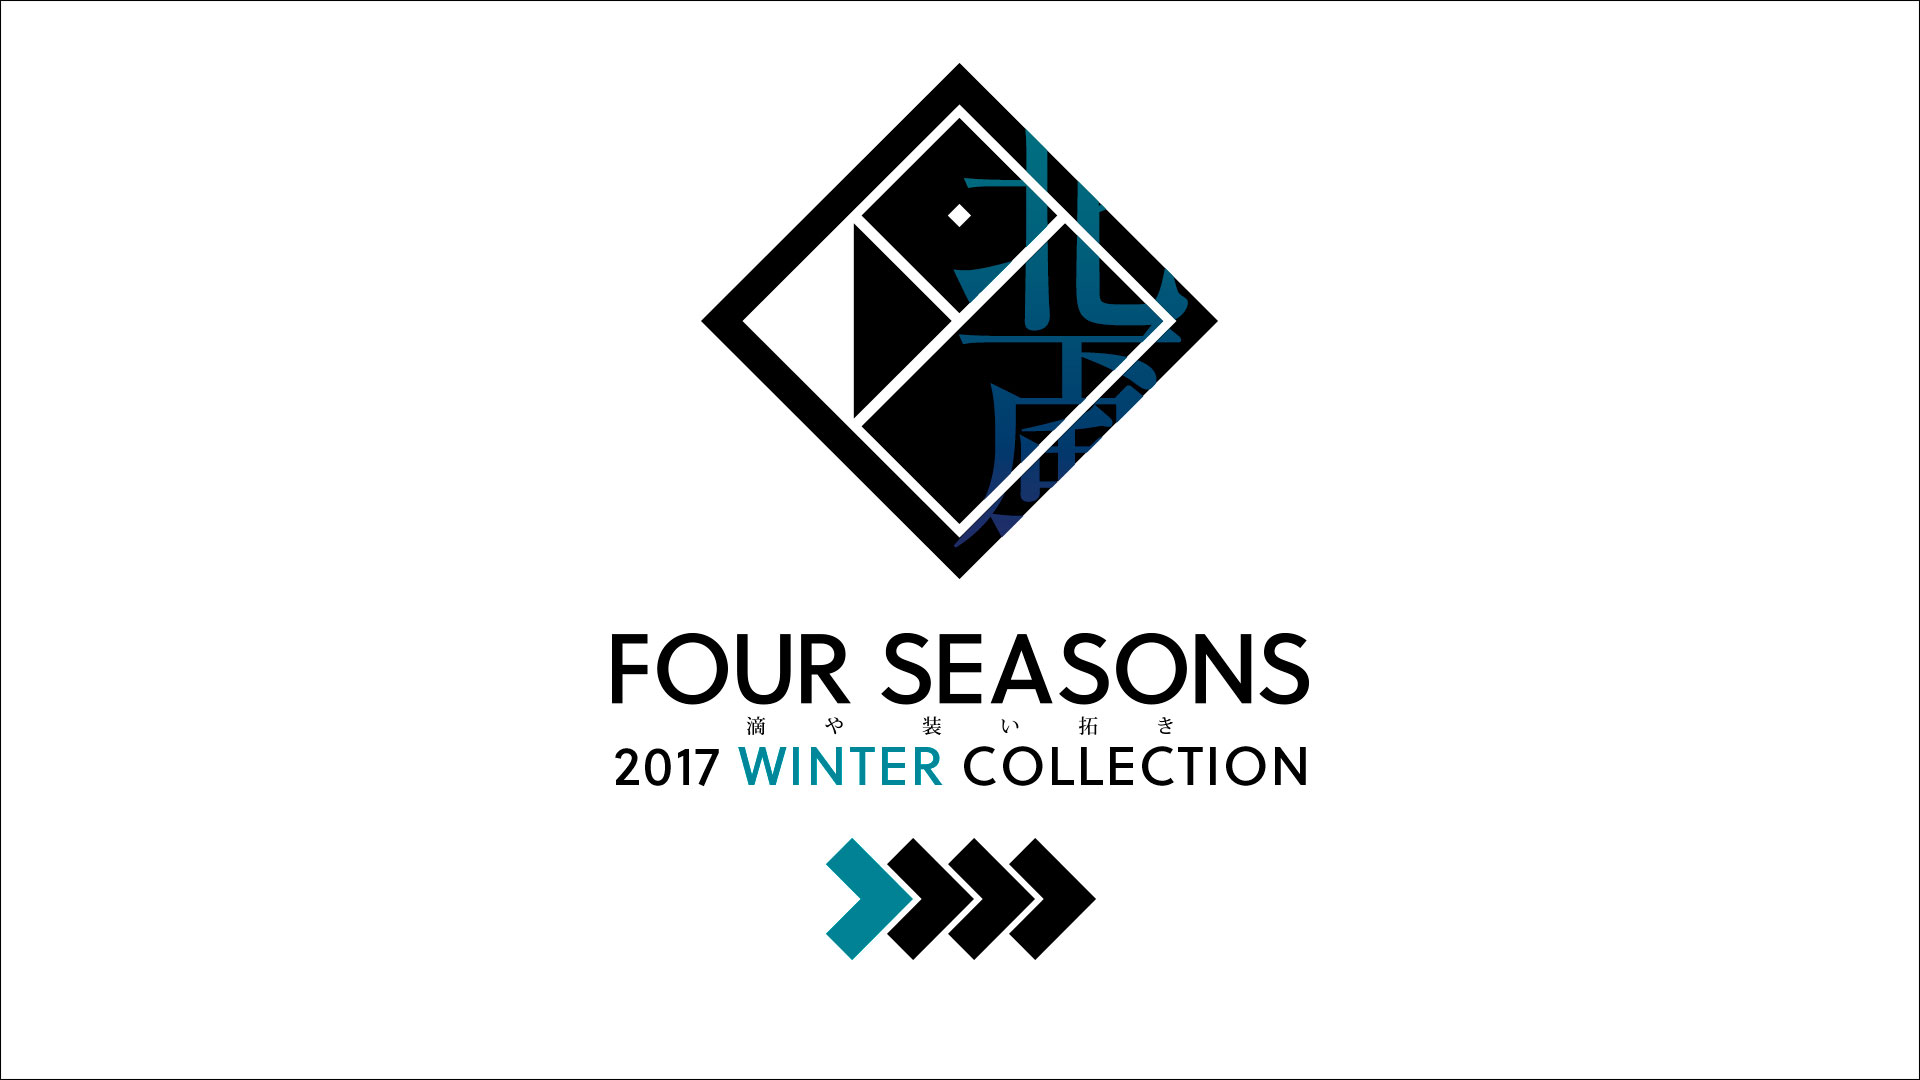 [PHOTO:FOUR SEASONS 2017 WINTER COLLECTION]